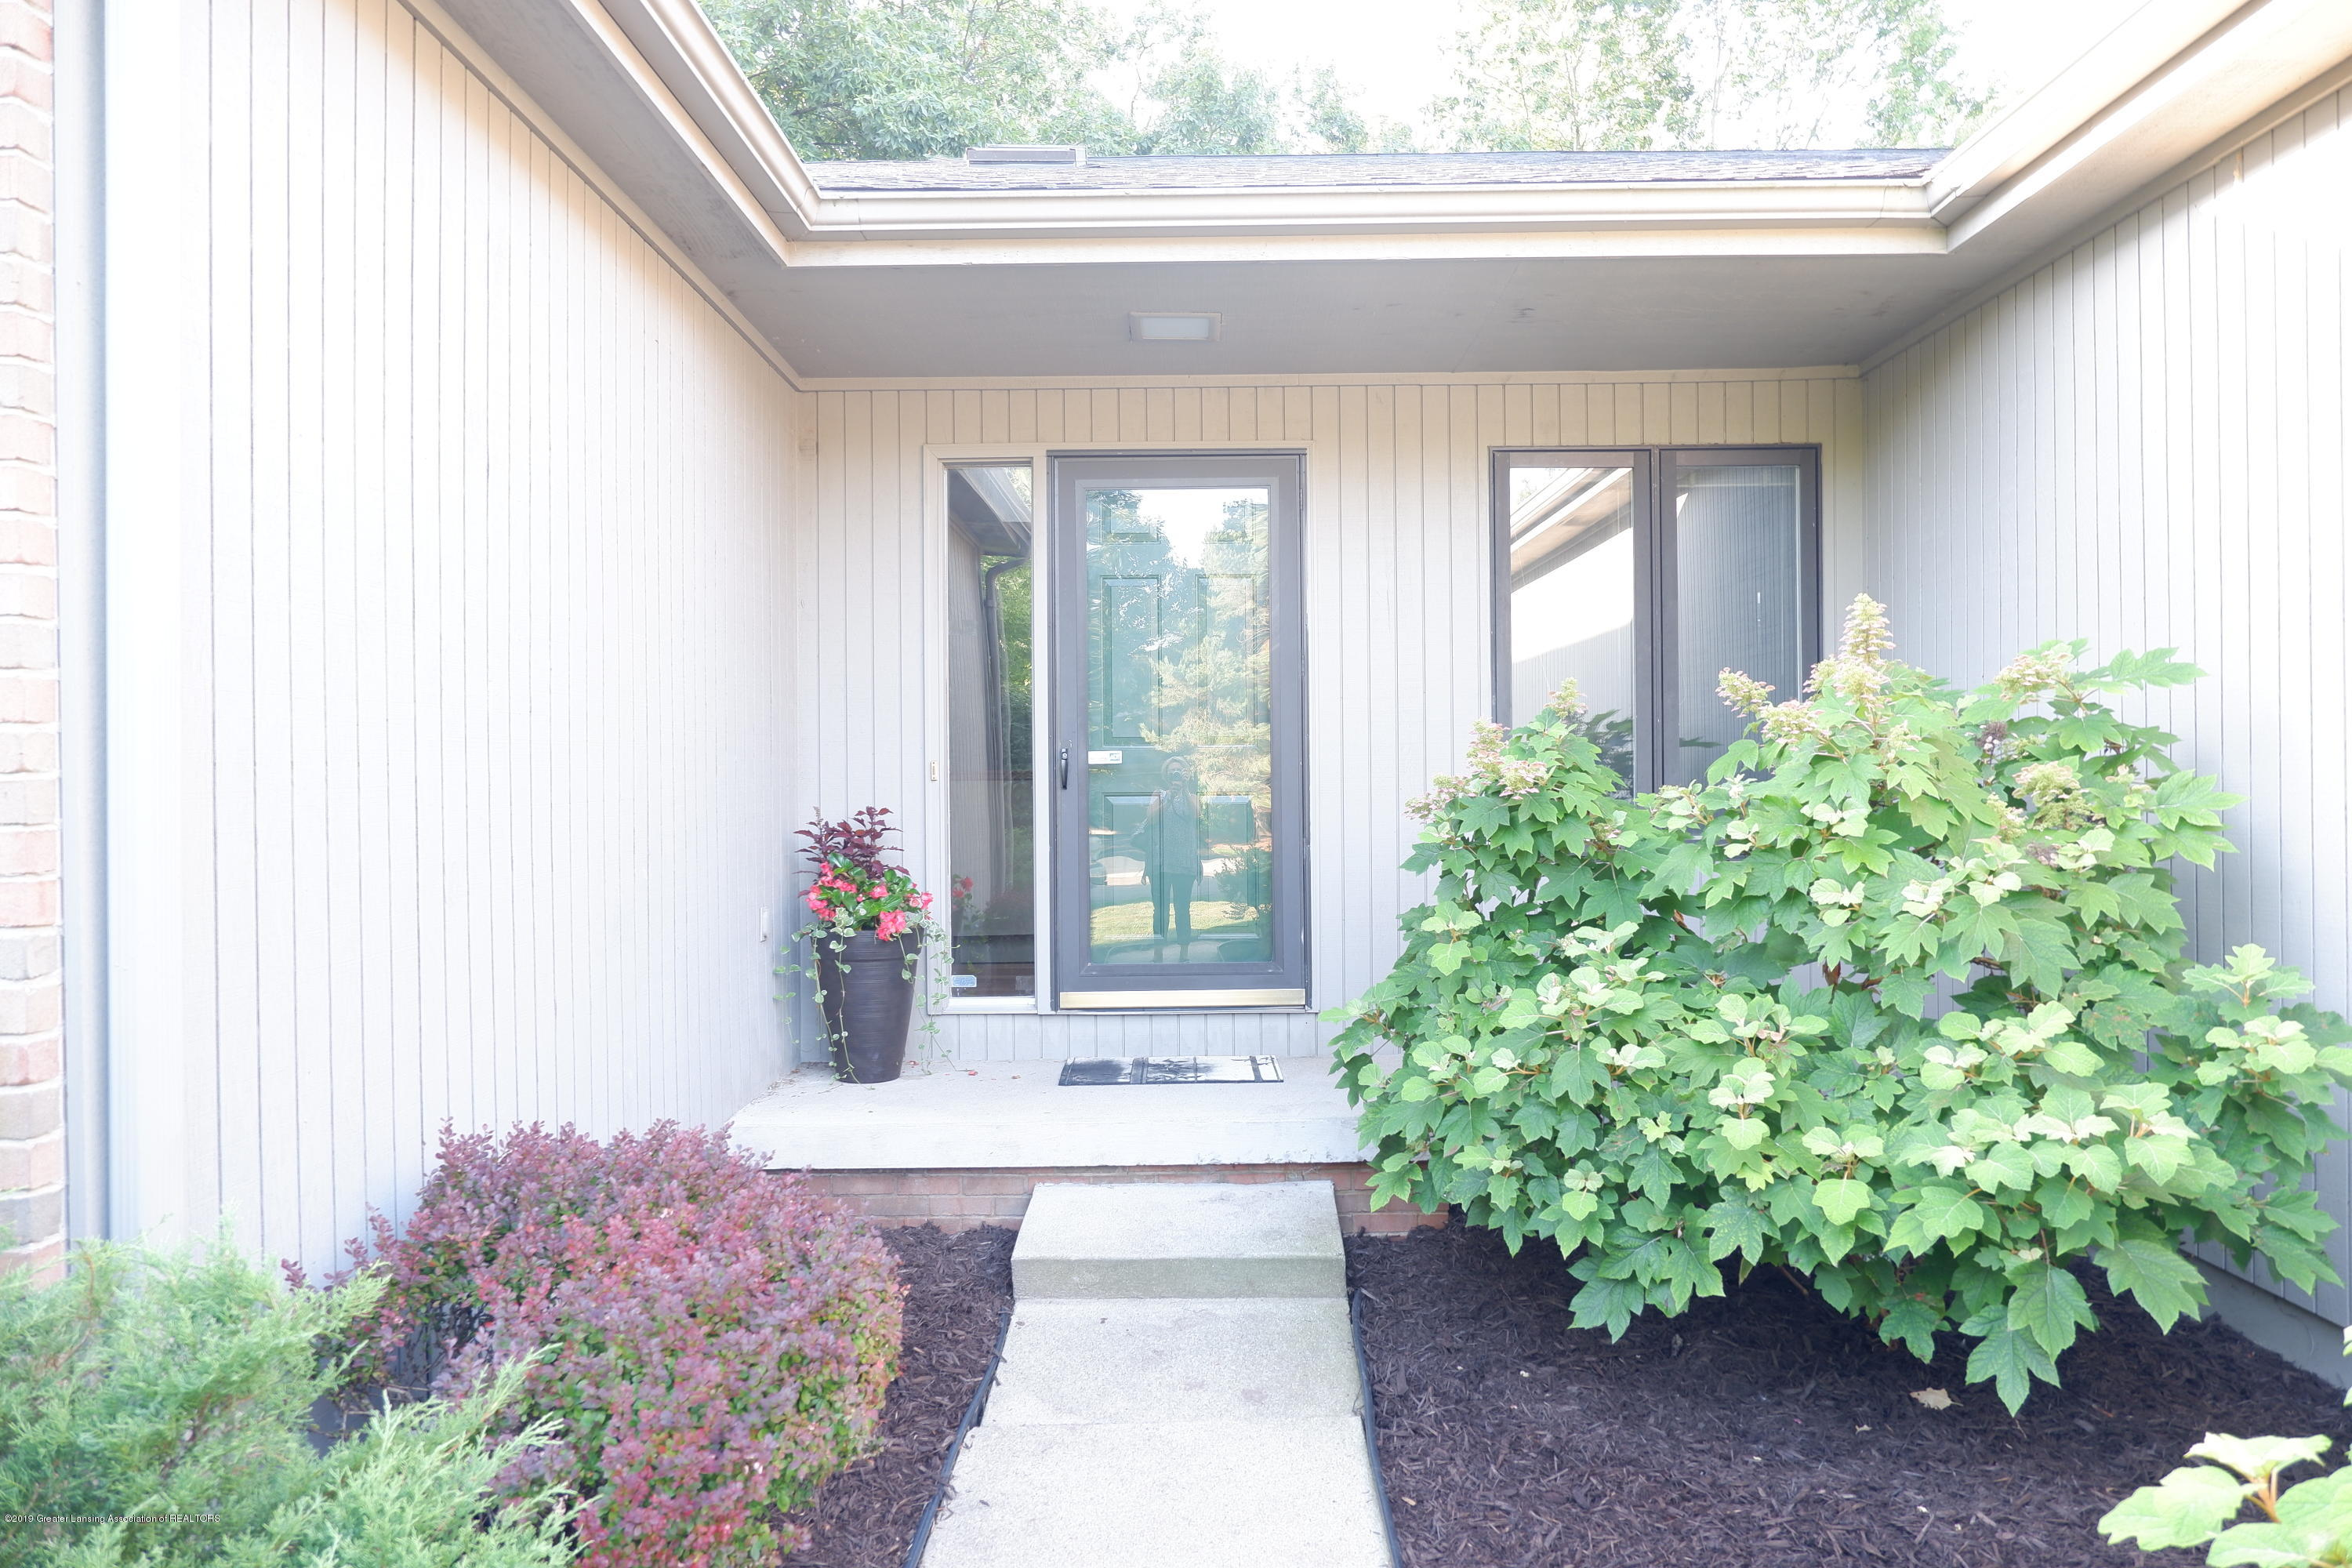 5250 E Hidden Lake Dr 89 - Welcoming entry - 2